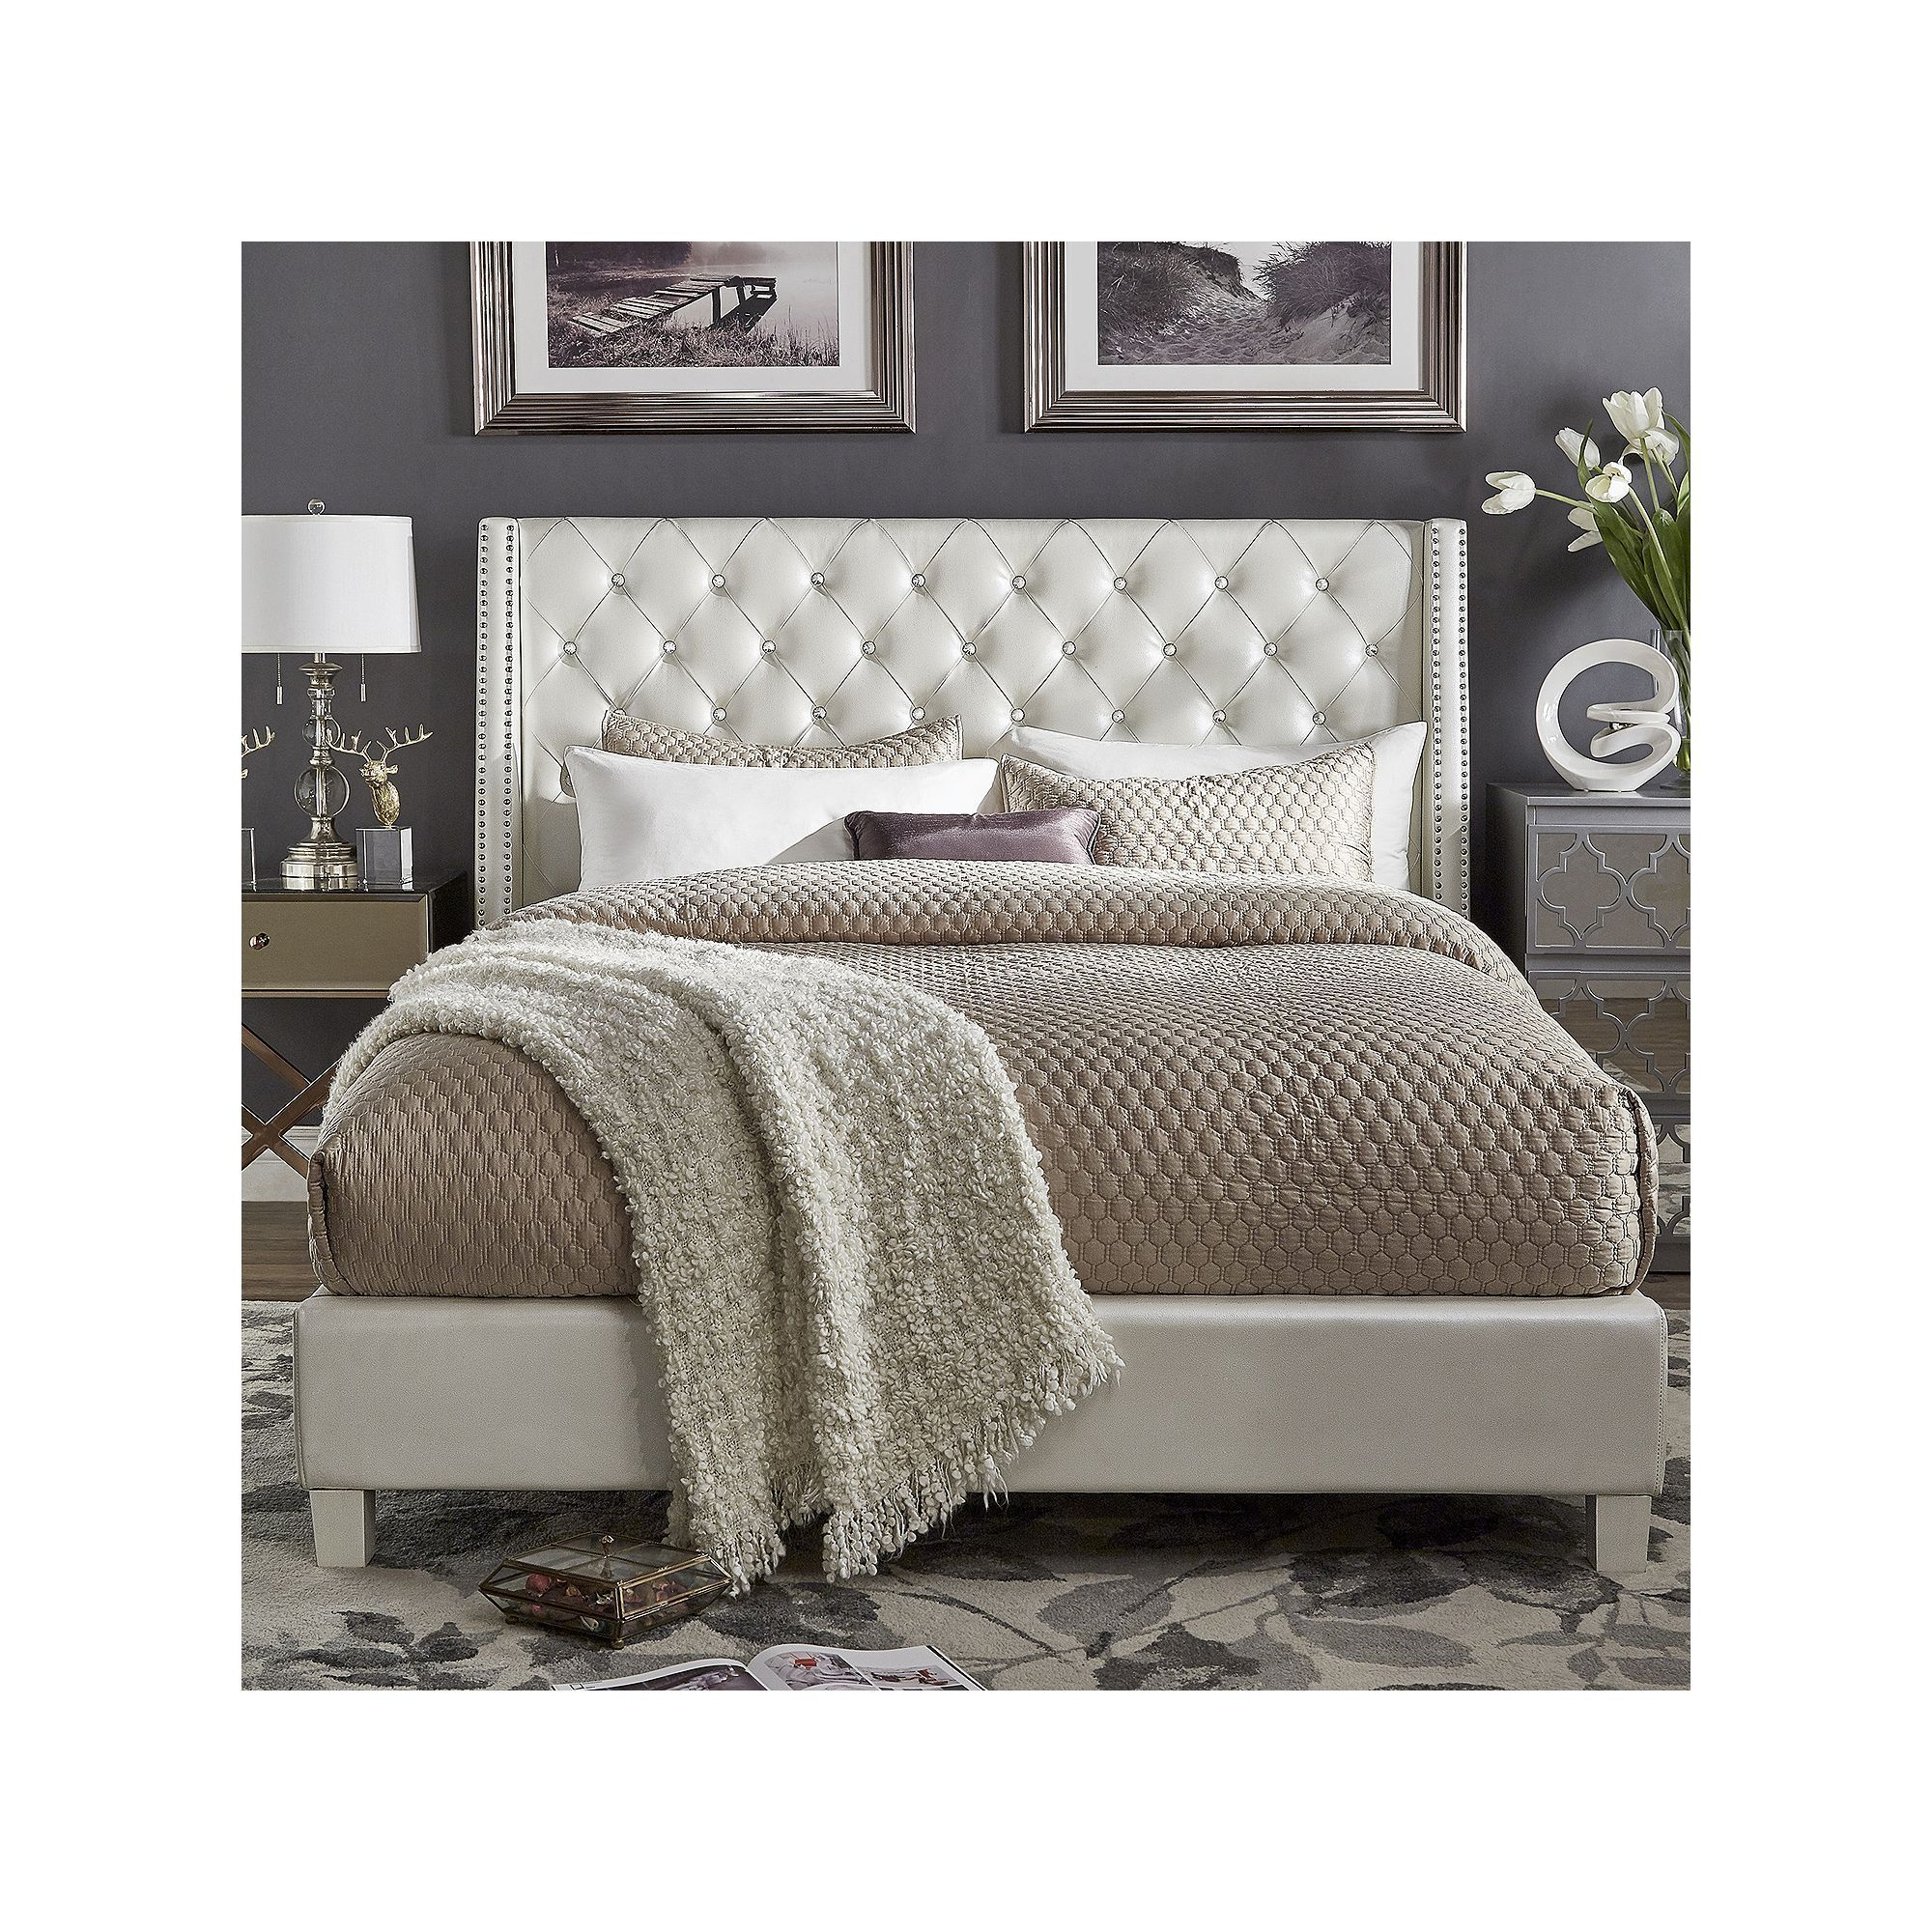 pdx home hurley furniture wayfair panel bed wingback co upholstered darby